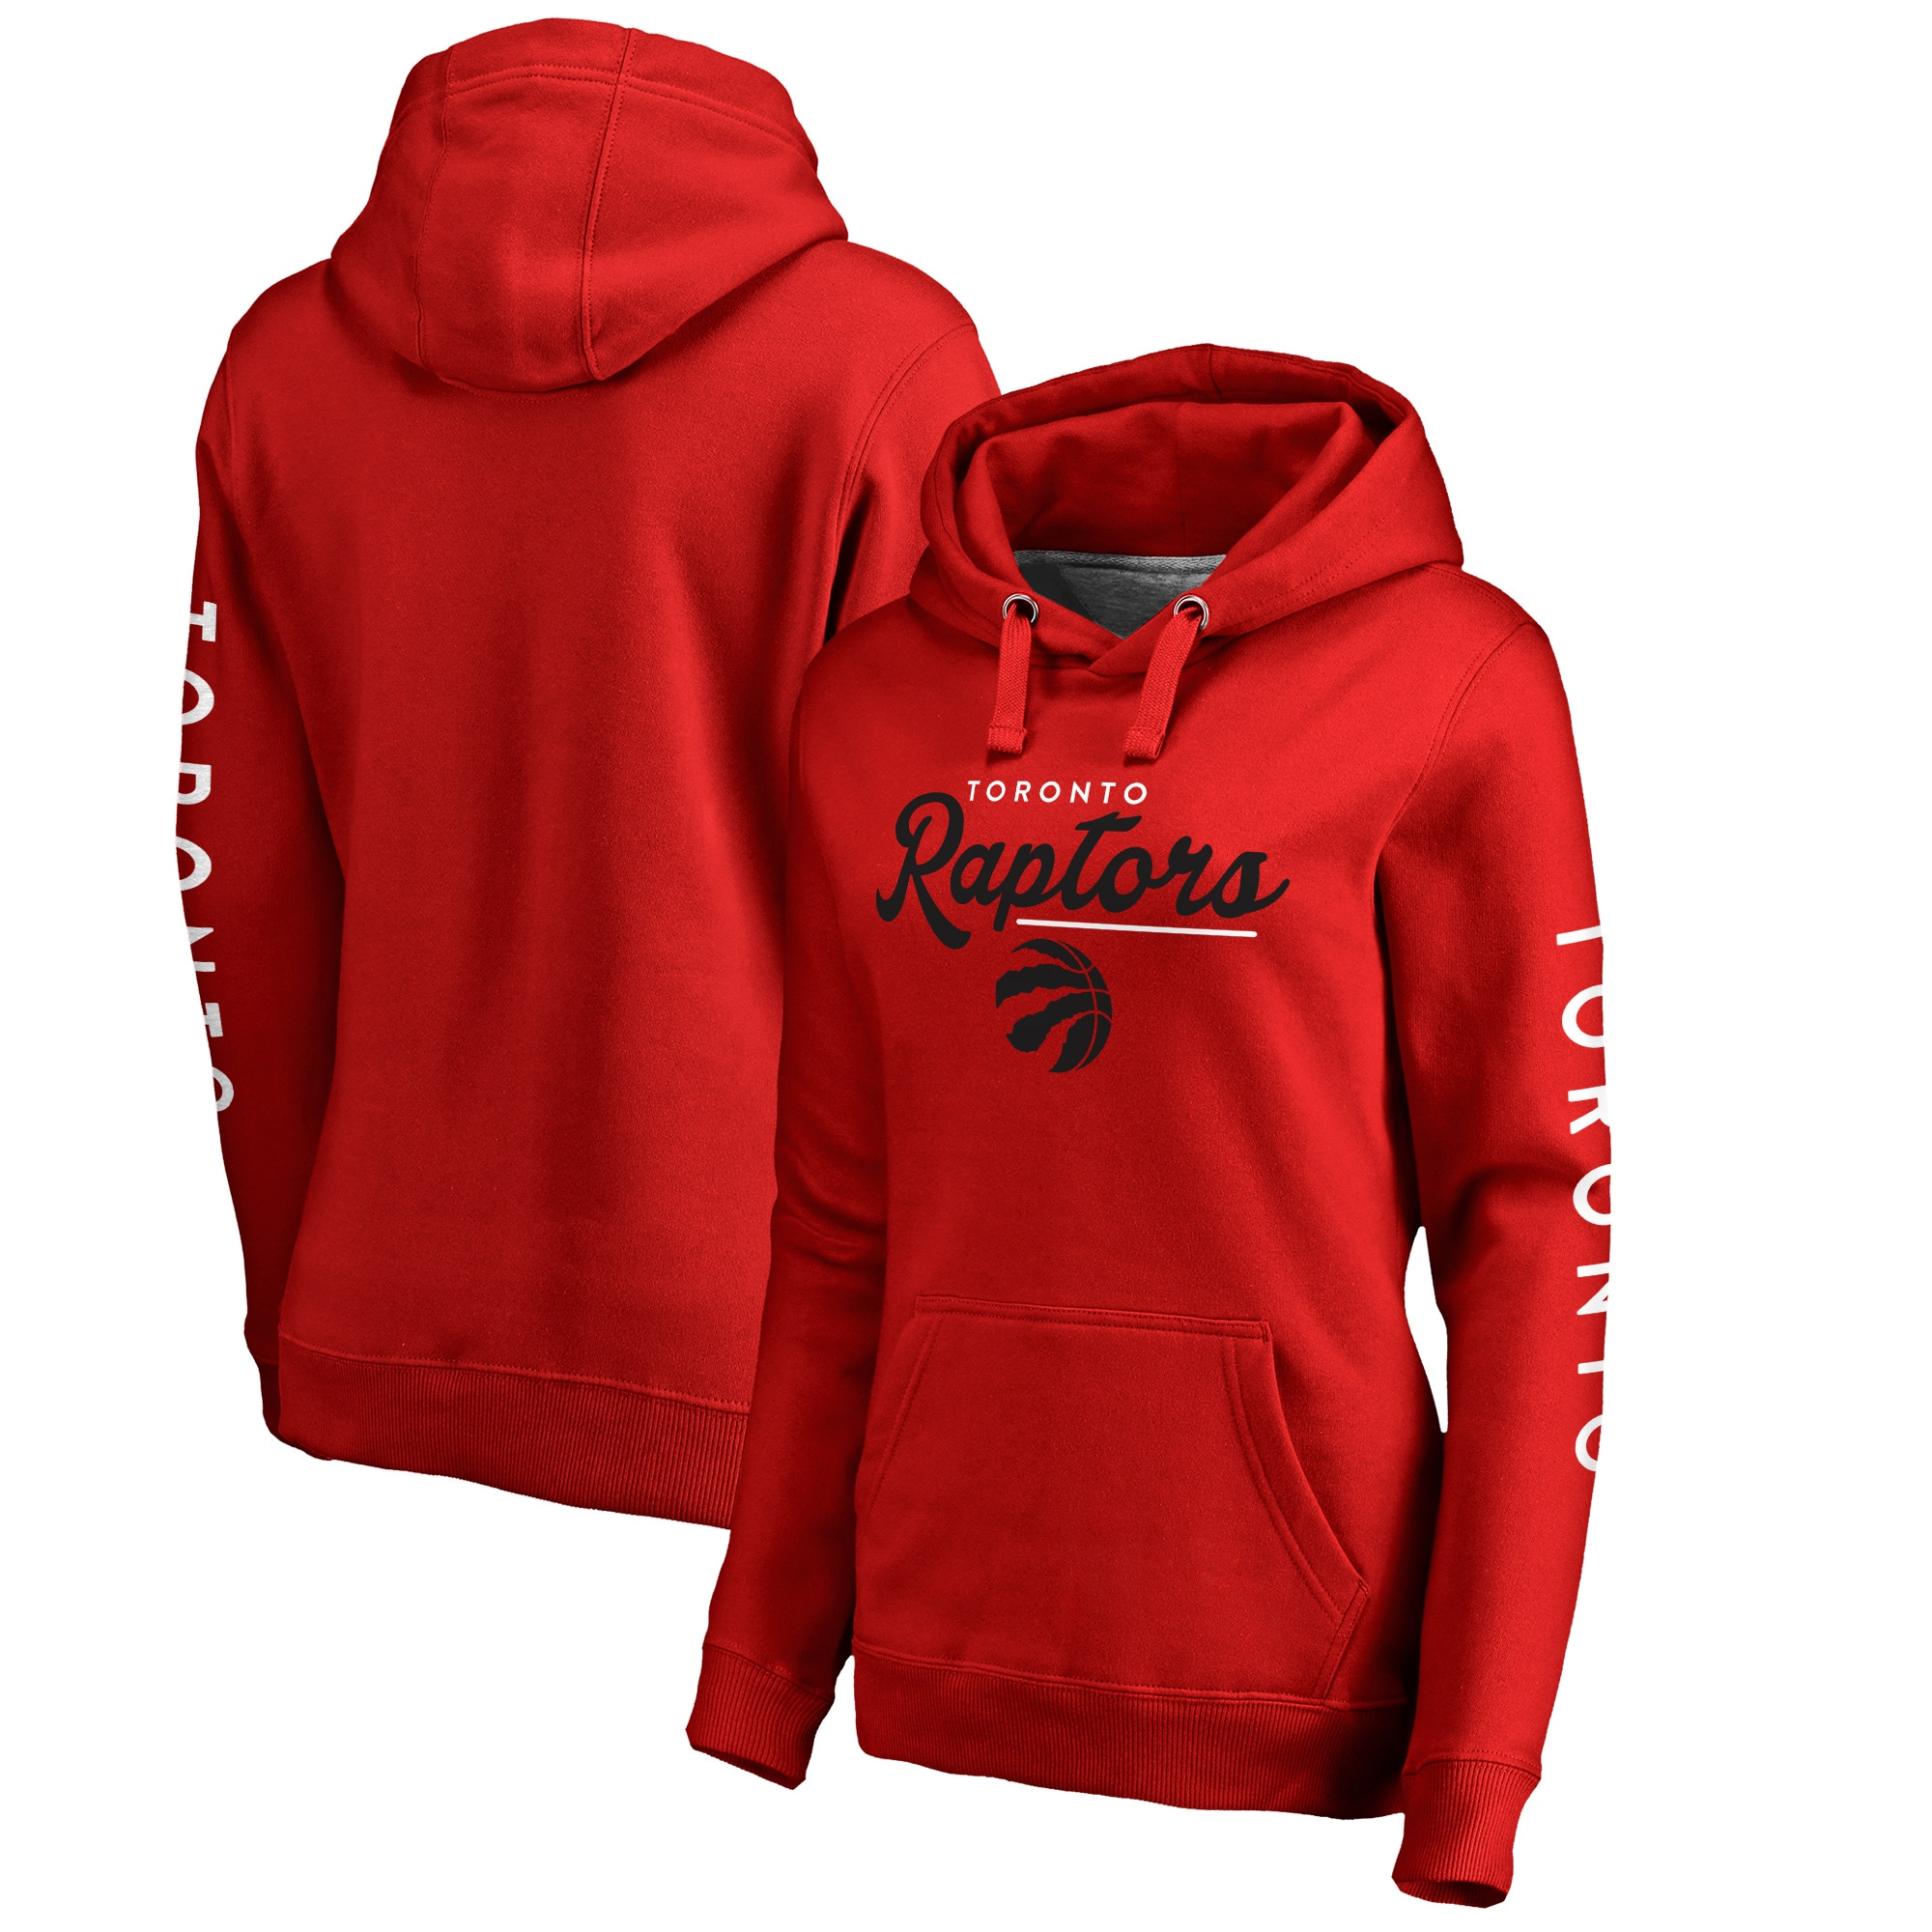 Toronto Raptors Fanatics Branded Women's High Class Pullover Hoodie - Red